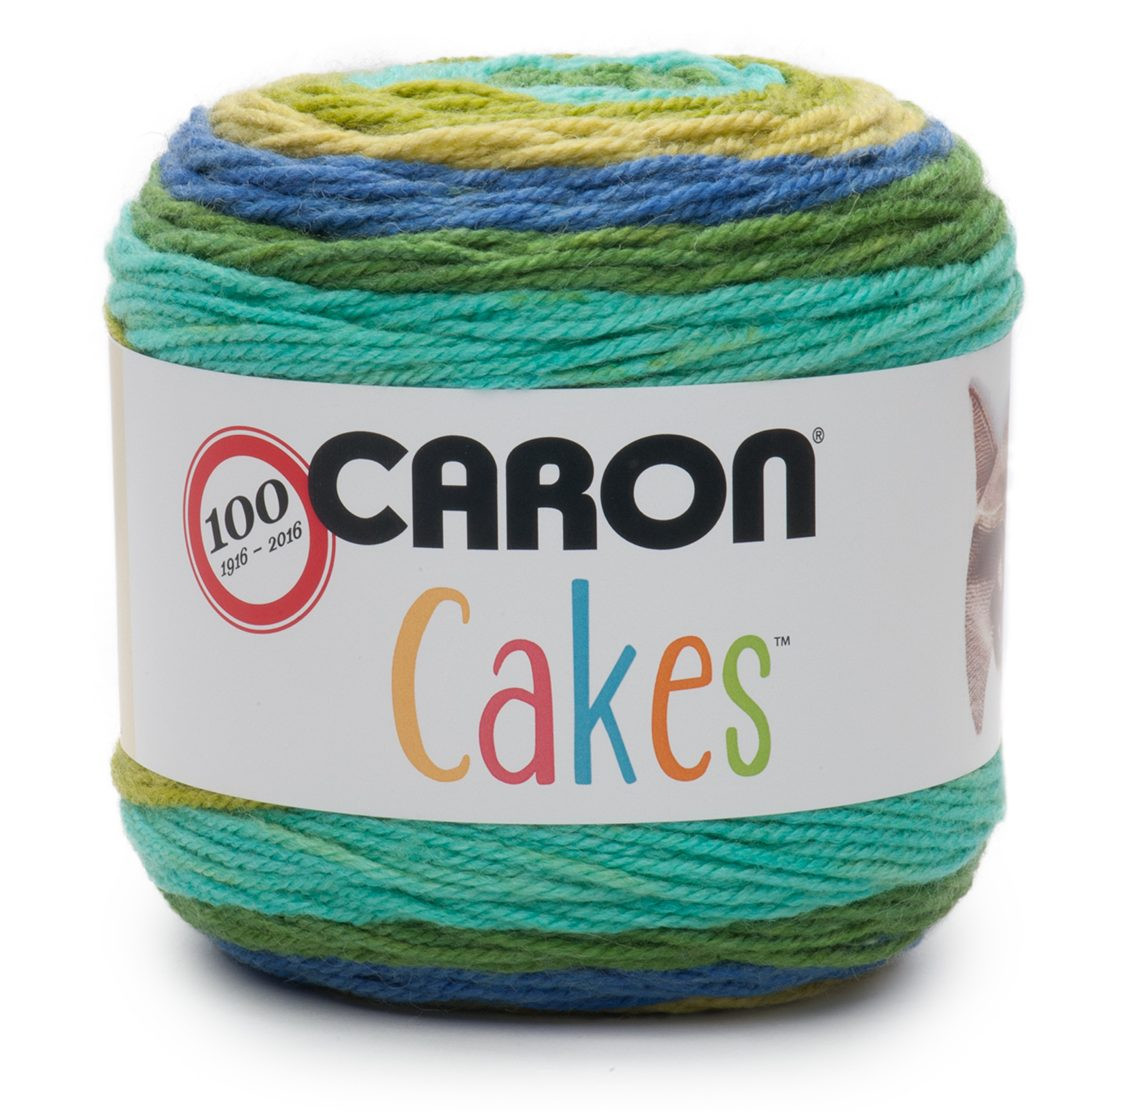 Fresh Free Crochet Patterns Featuring Caron Cakes Yarn Caron Baby Cakes Yarn Of Innovative 50 Images Caron Baby Cakes Yarn